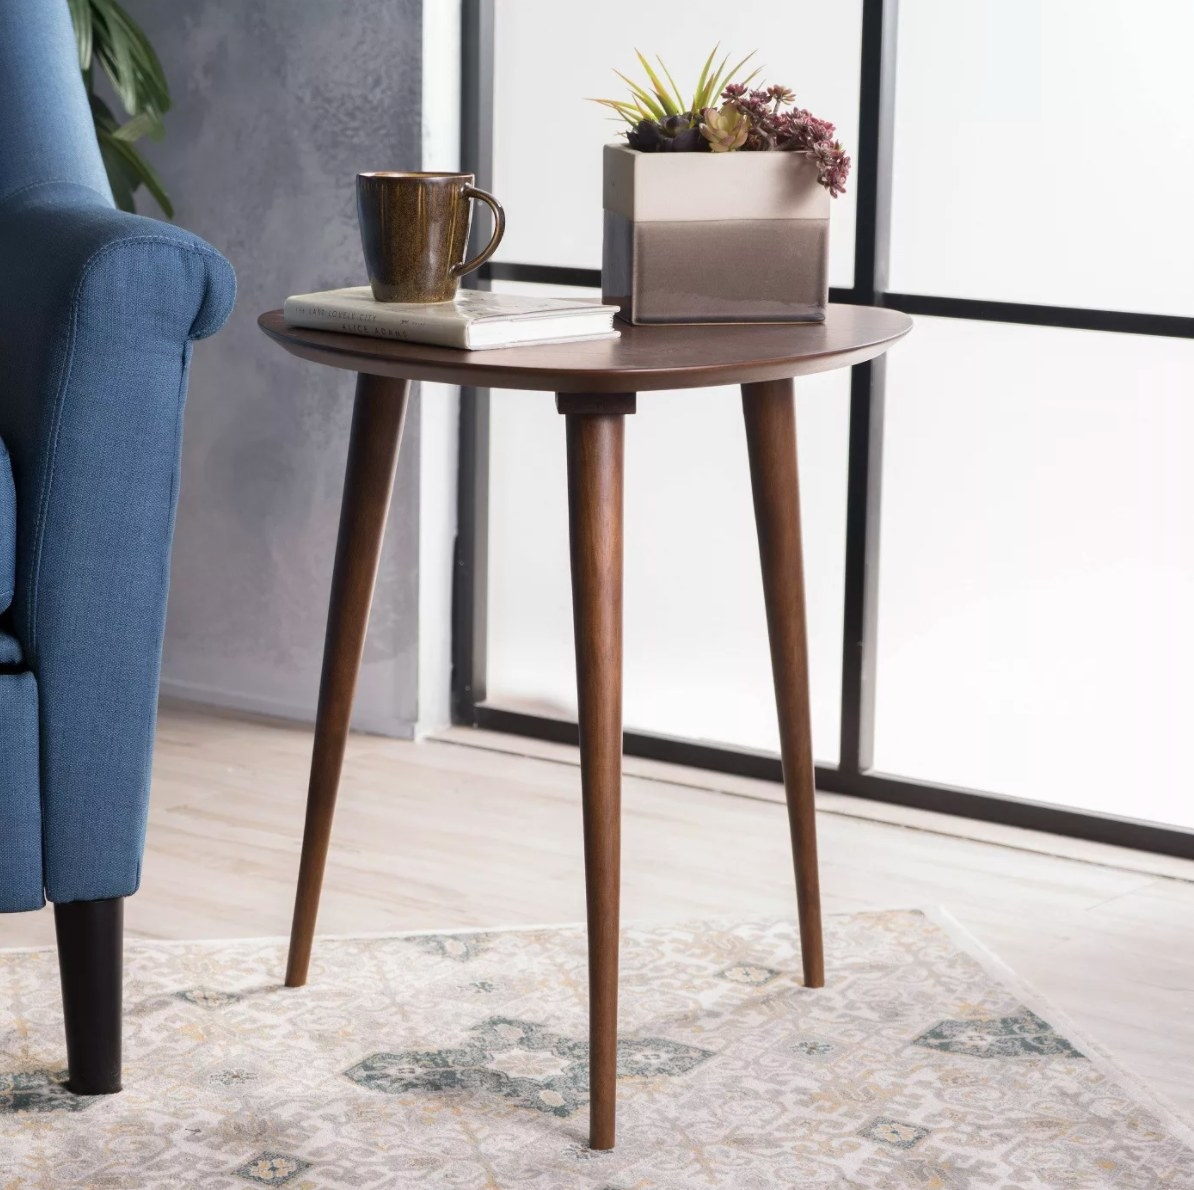 The wood end table holding a book, cup of coffee, and planter